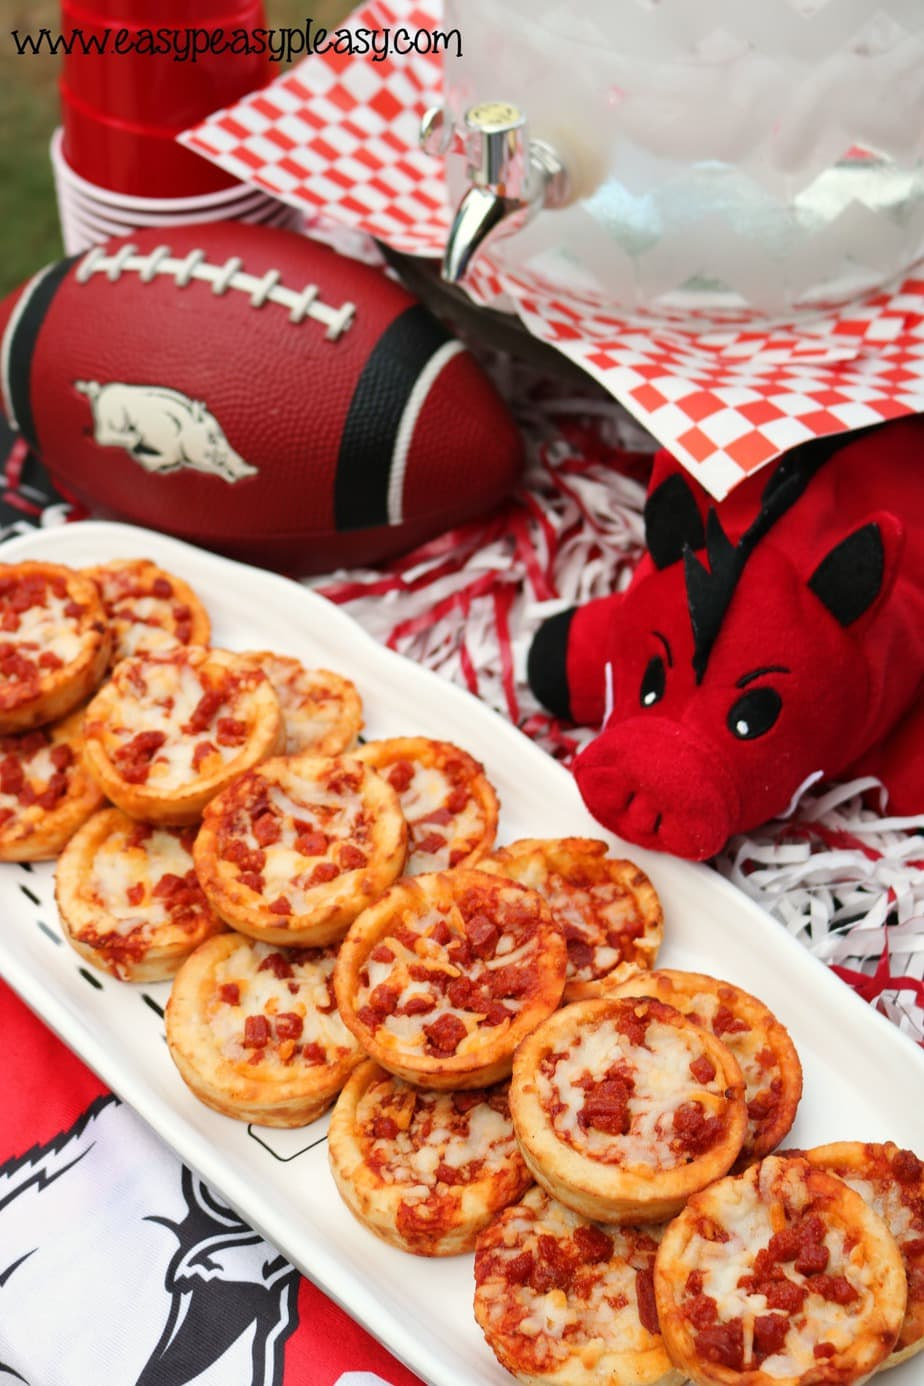 Kids game day food made easy!